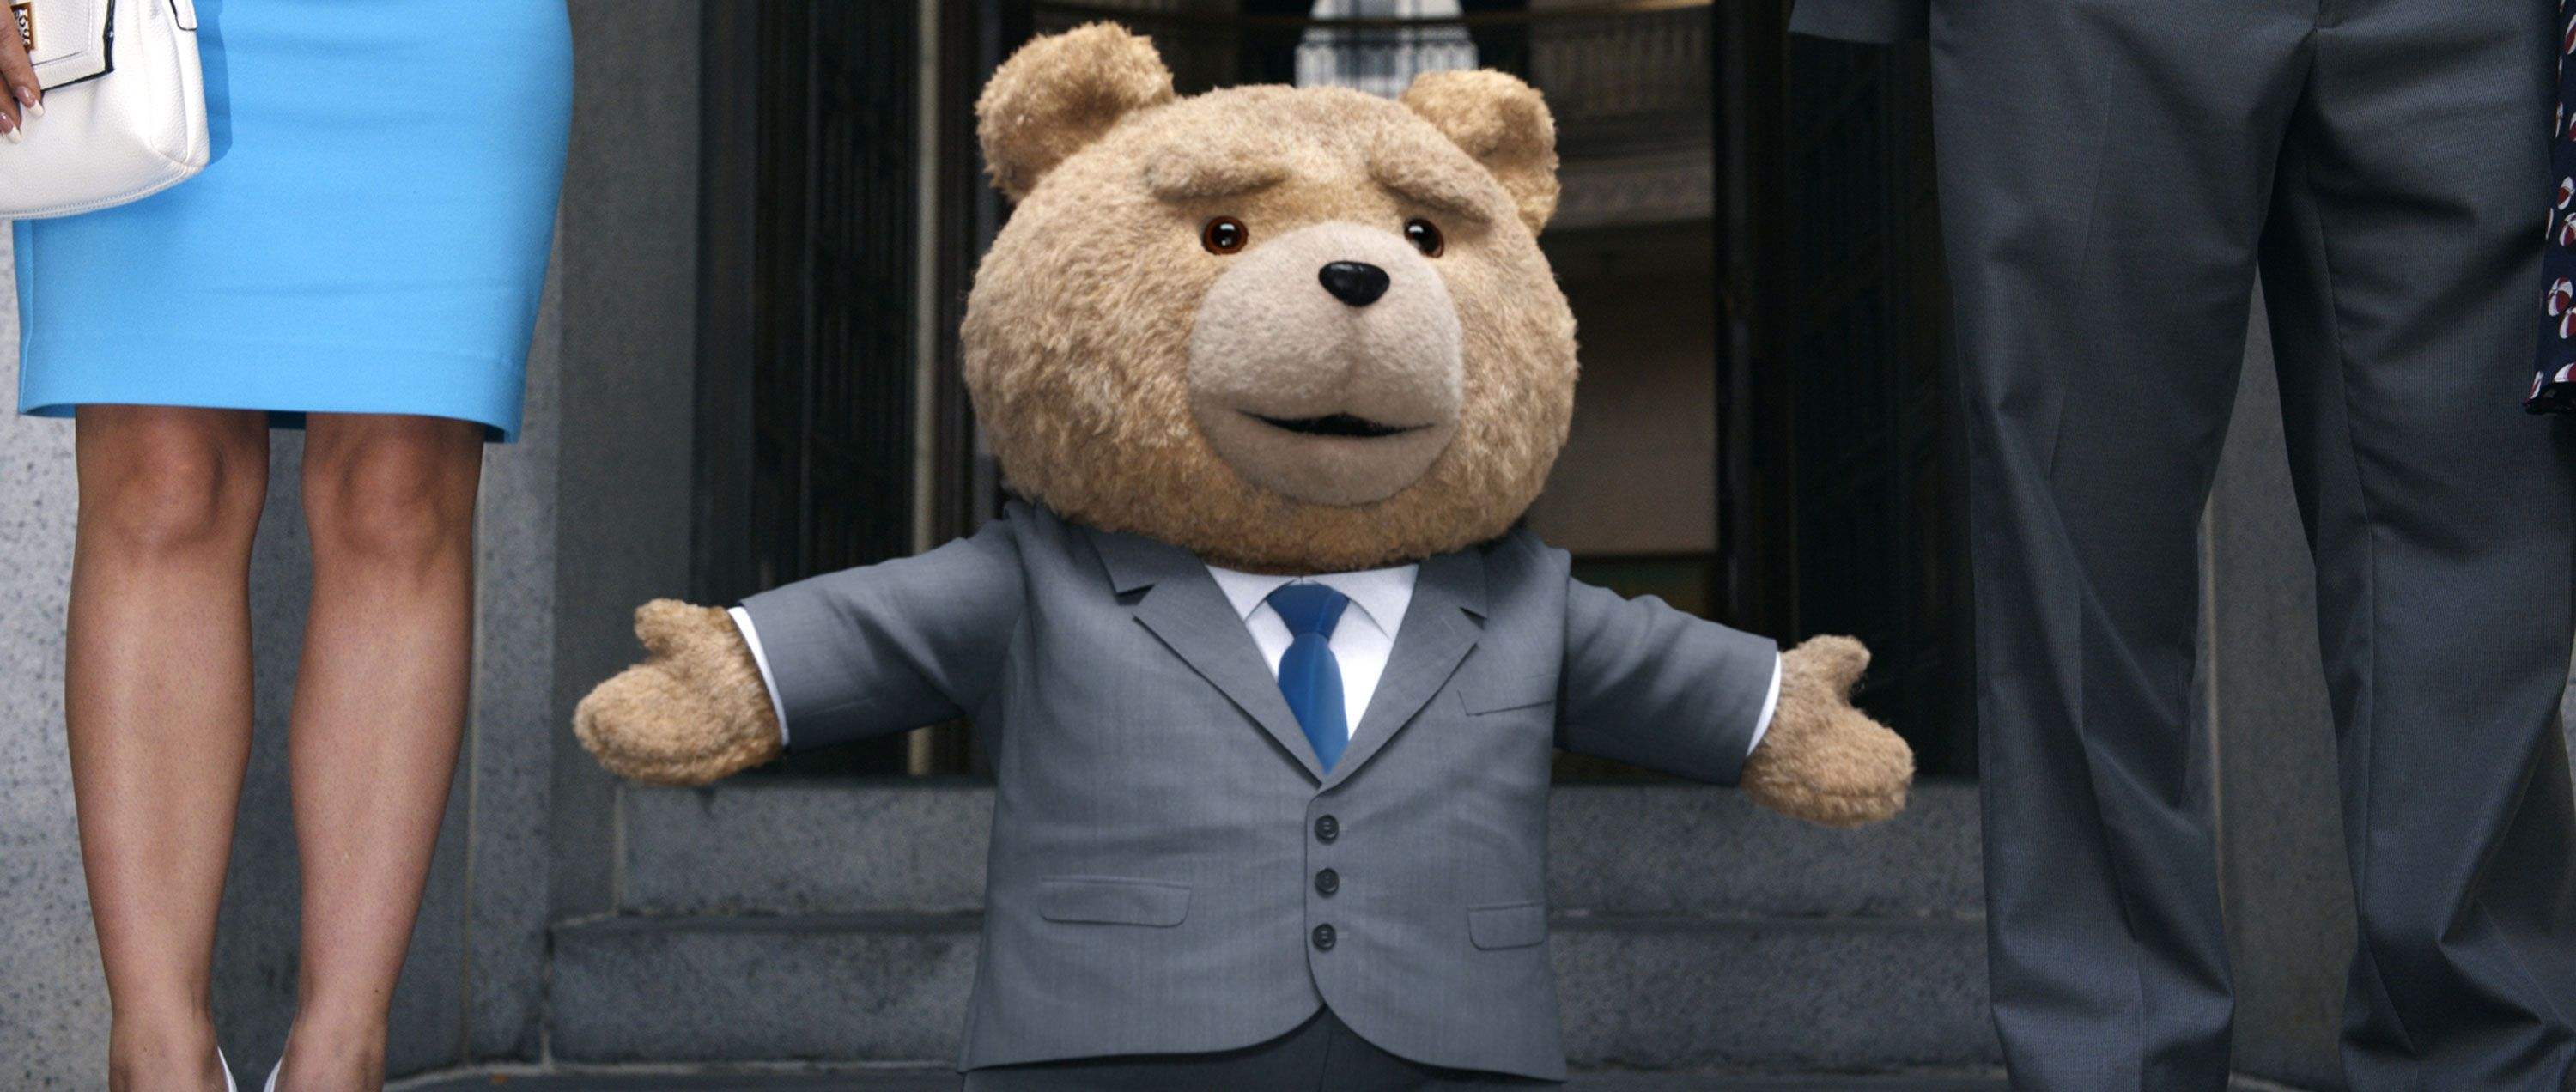 ted 2 pictures: 8 hi-res shots featuring mark wahlberg and seth